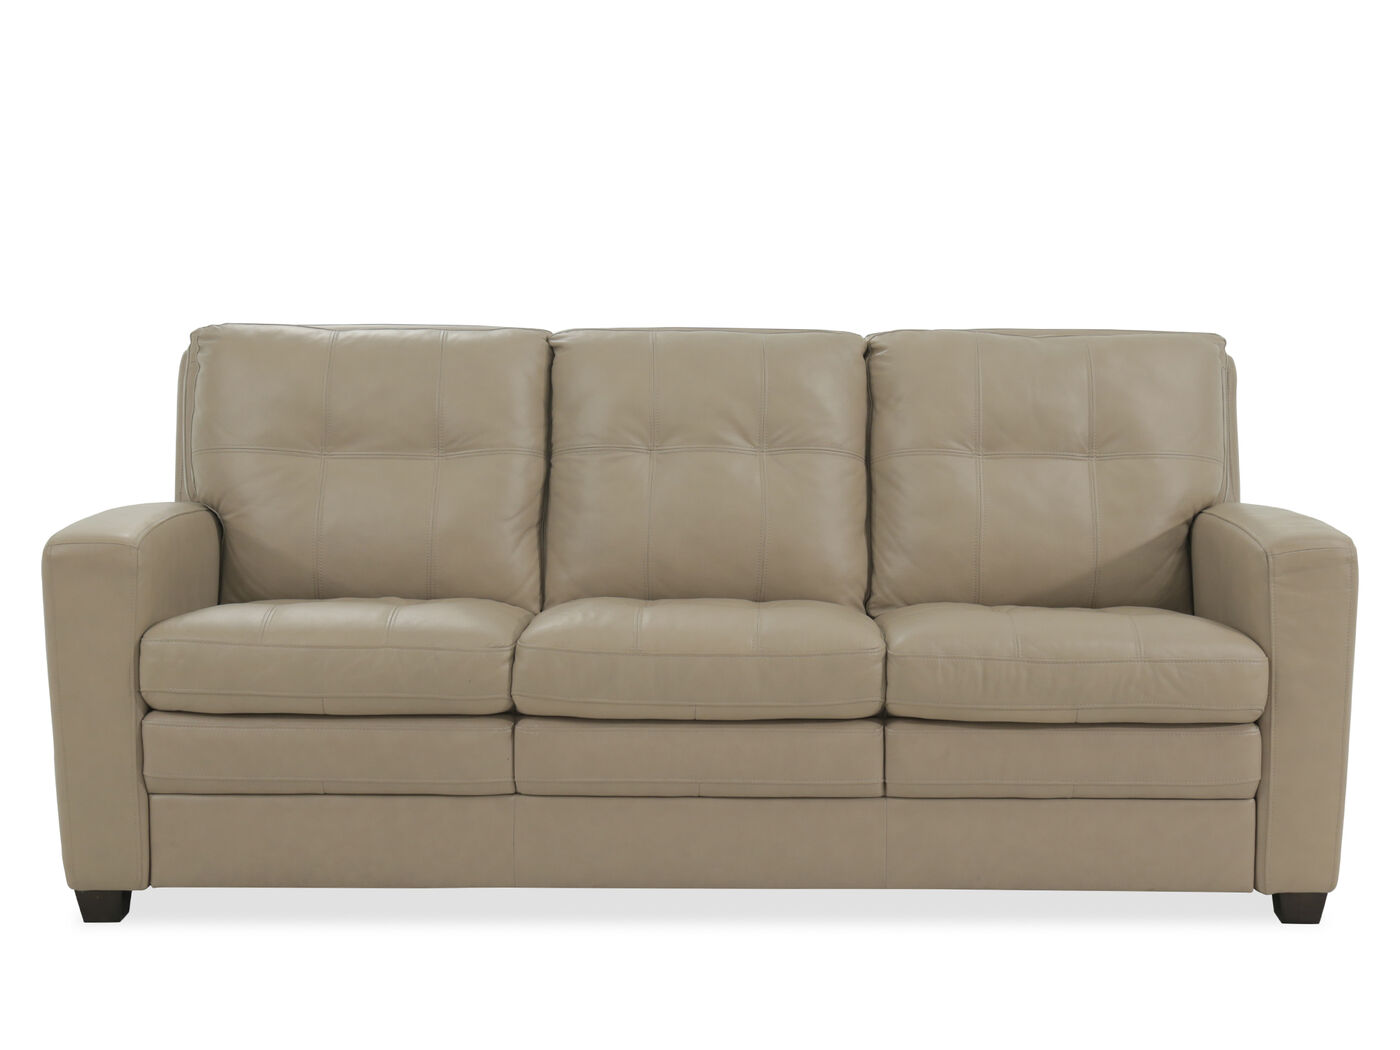 Leather Tufted 82 Quot Sofa In Beige Mathis Brothers Furniture